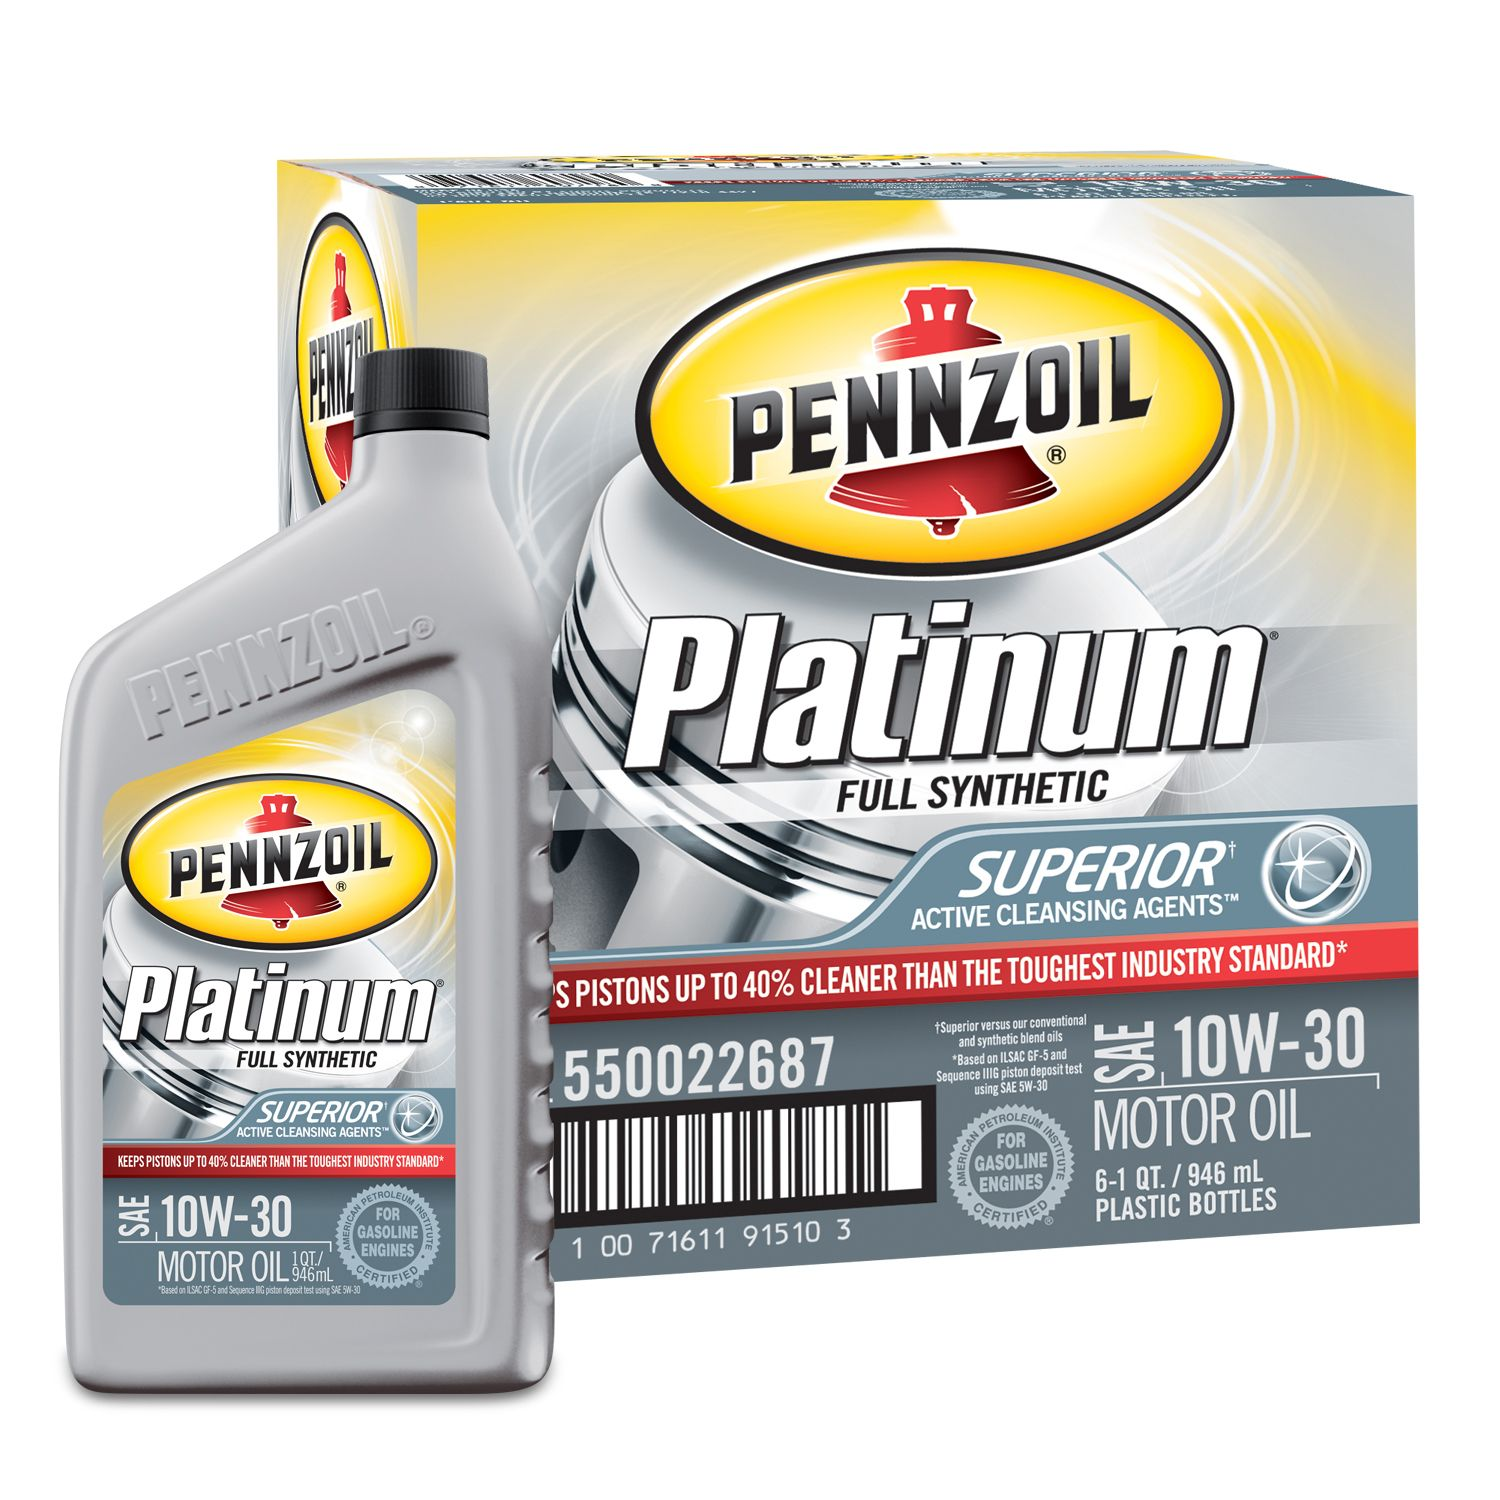 Pennzoil is now the re mended oil for BMW engines